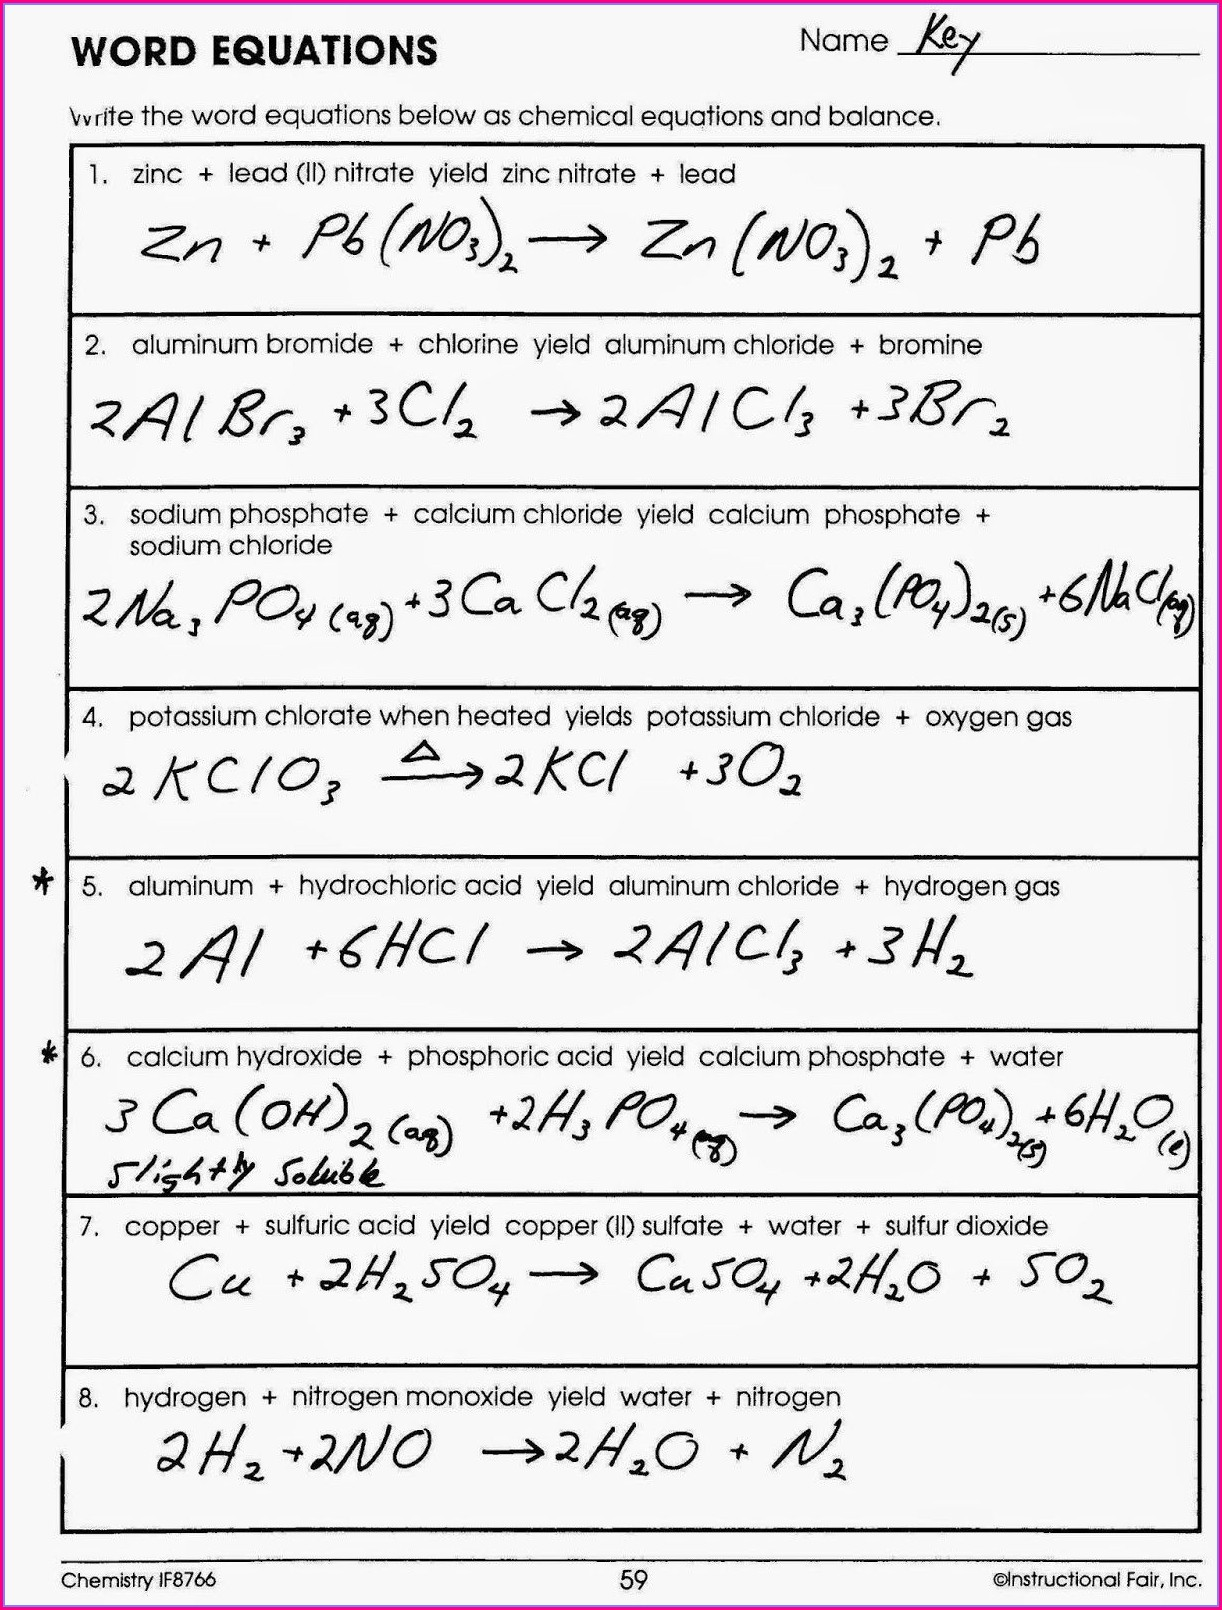 Chemical Word Equations #1 Worksheet Answers